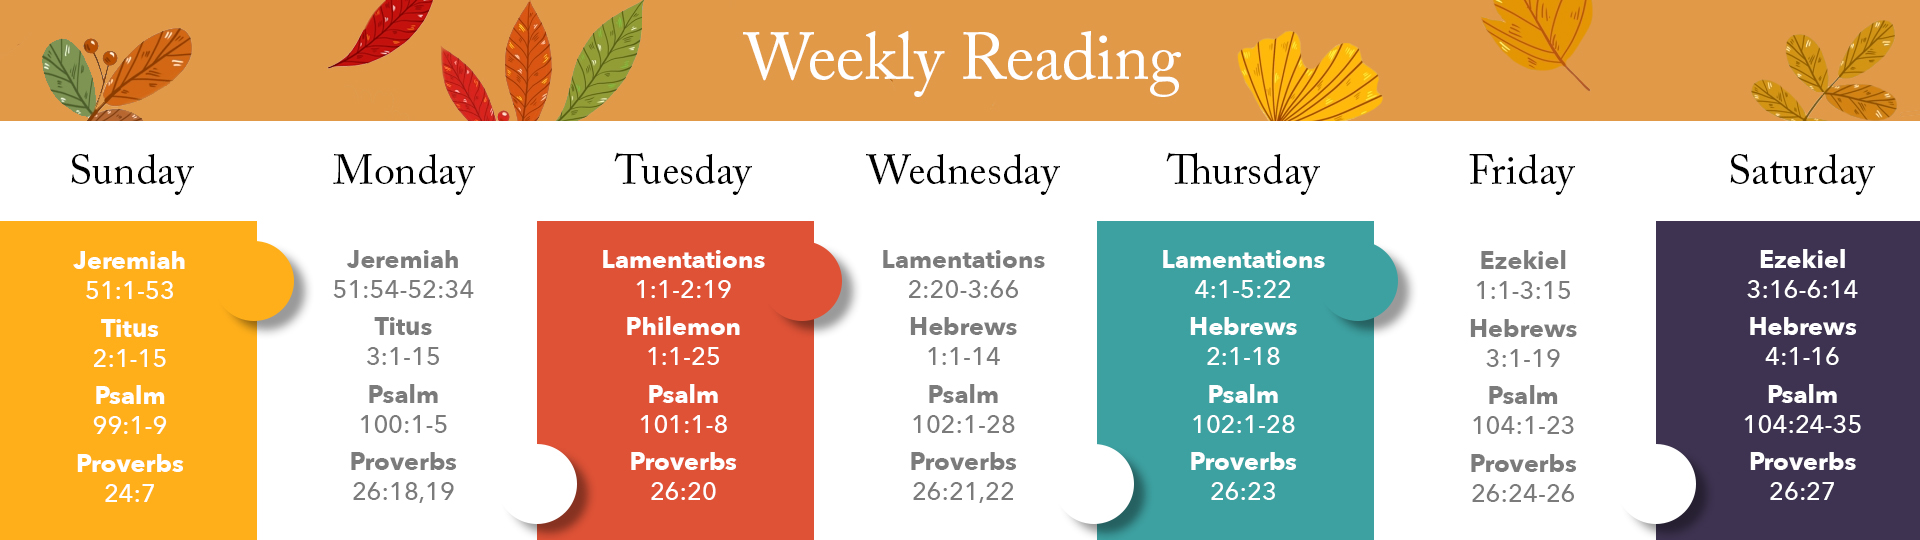 Weekly Reading